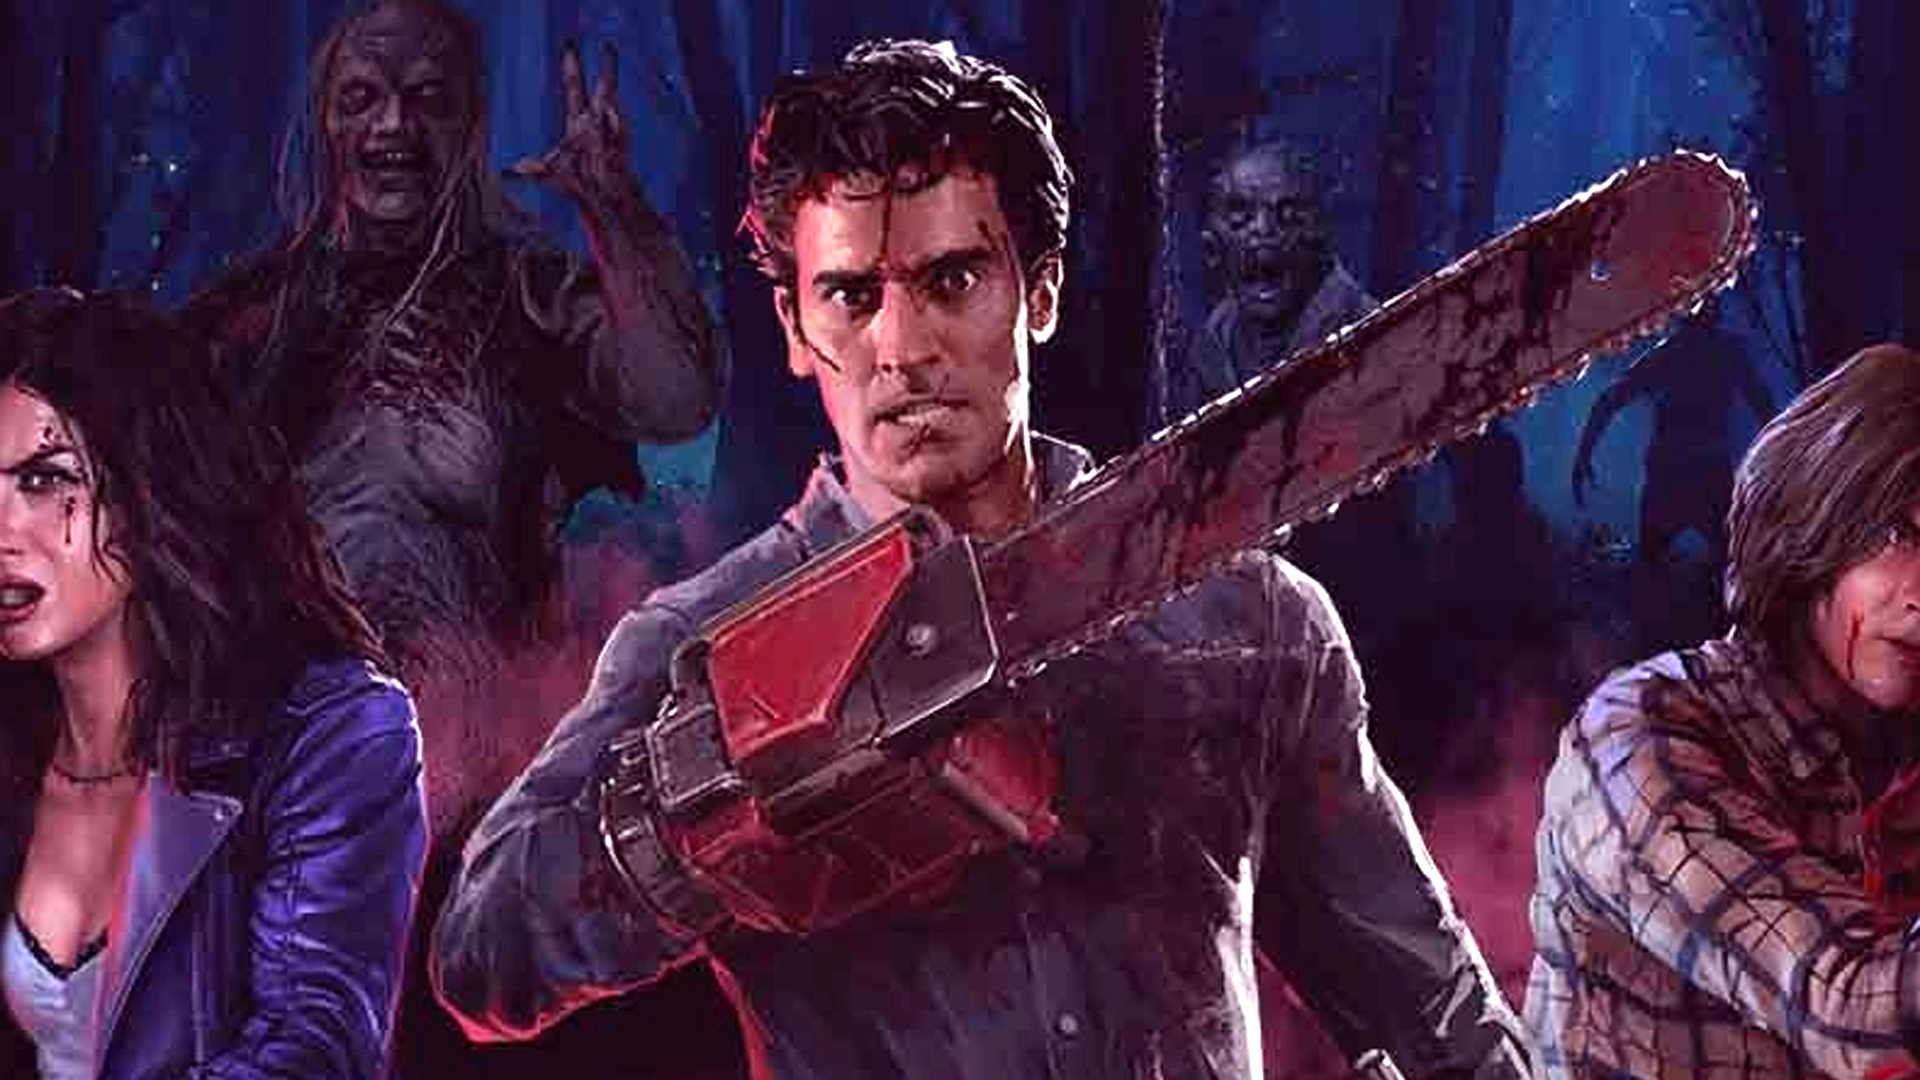 The Evil Dead game's missing the movie's 40th anniversary to add single-player